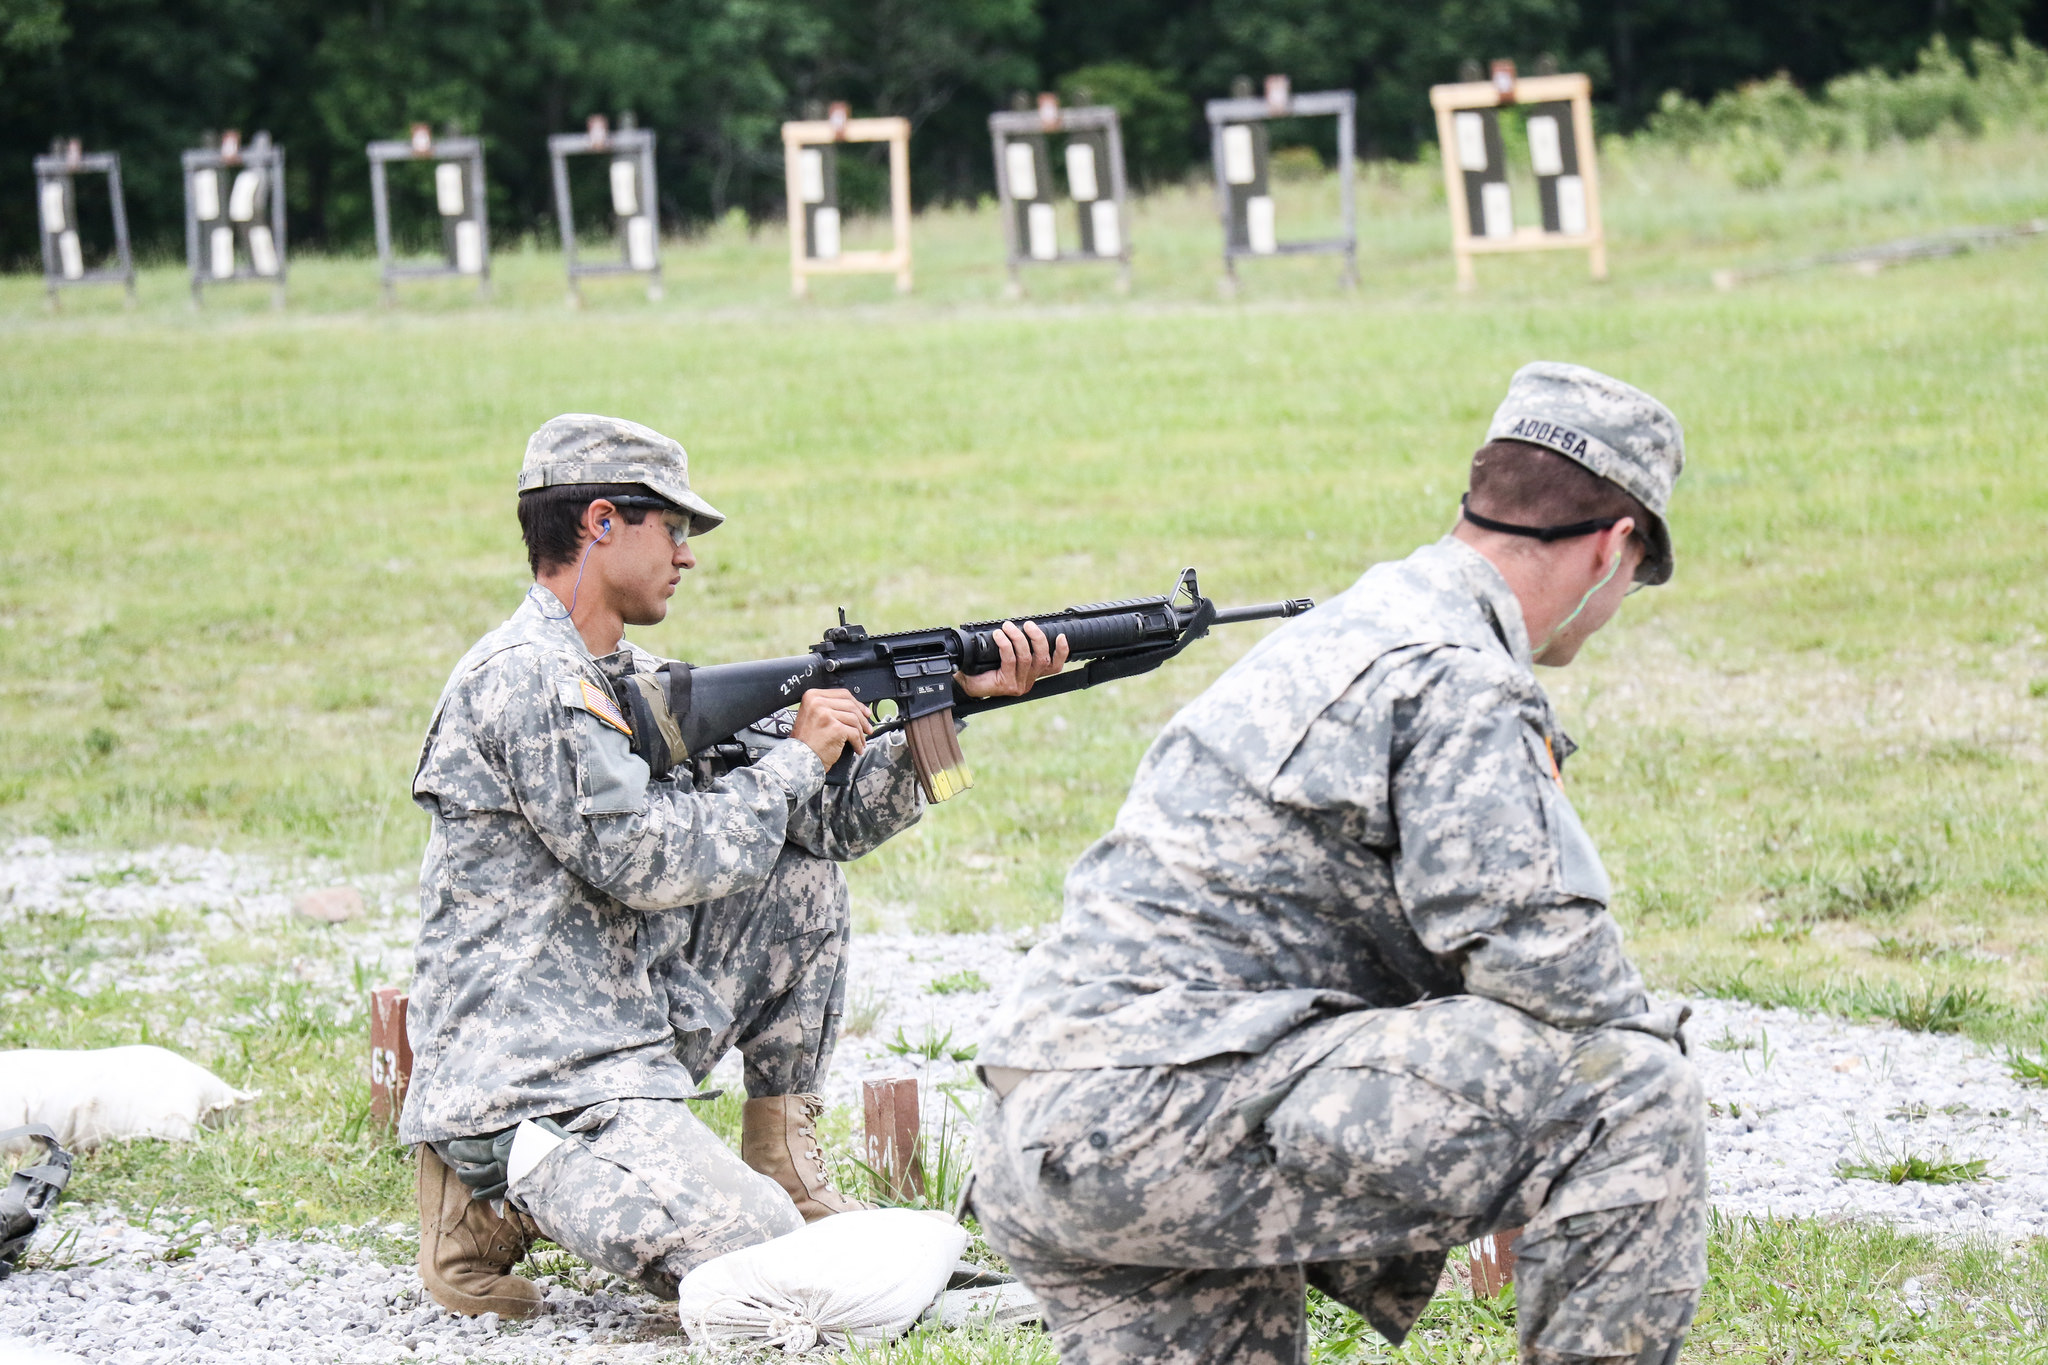 Cadets qualify with rifle, pursue Recondo Badge